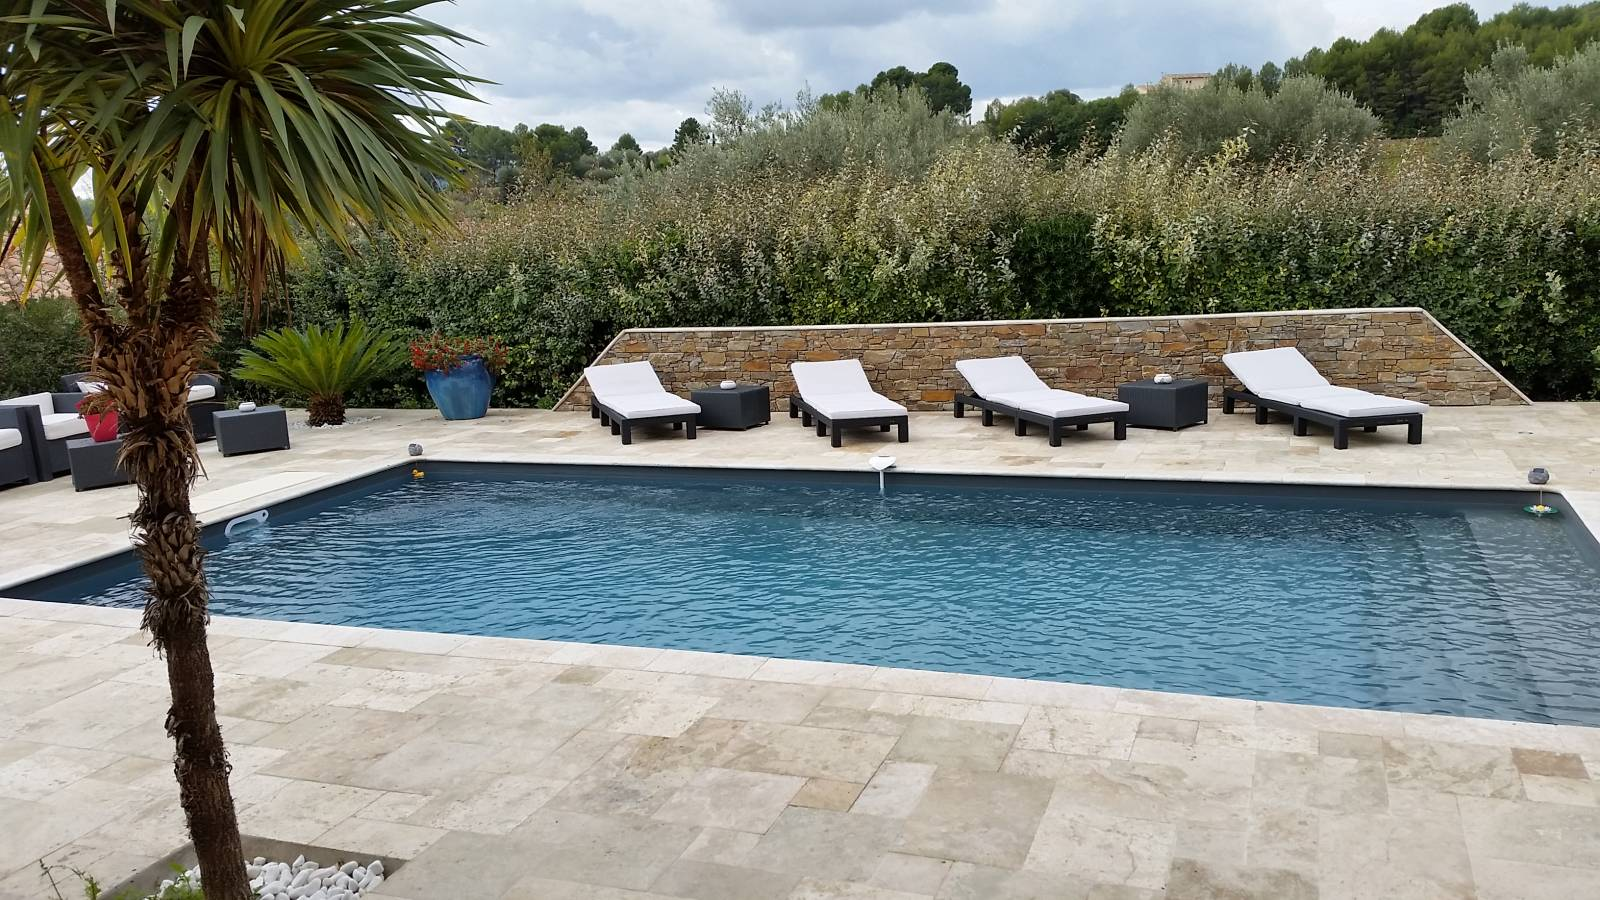 Plage en travertin multiformat jce piscines for Piscine hors sol gris anthracite